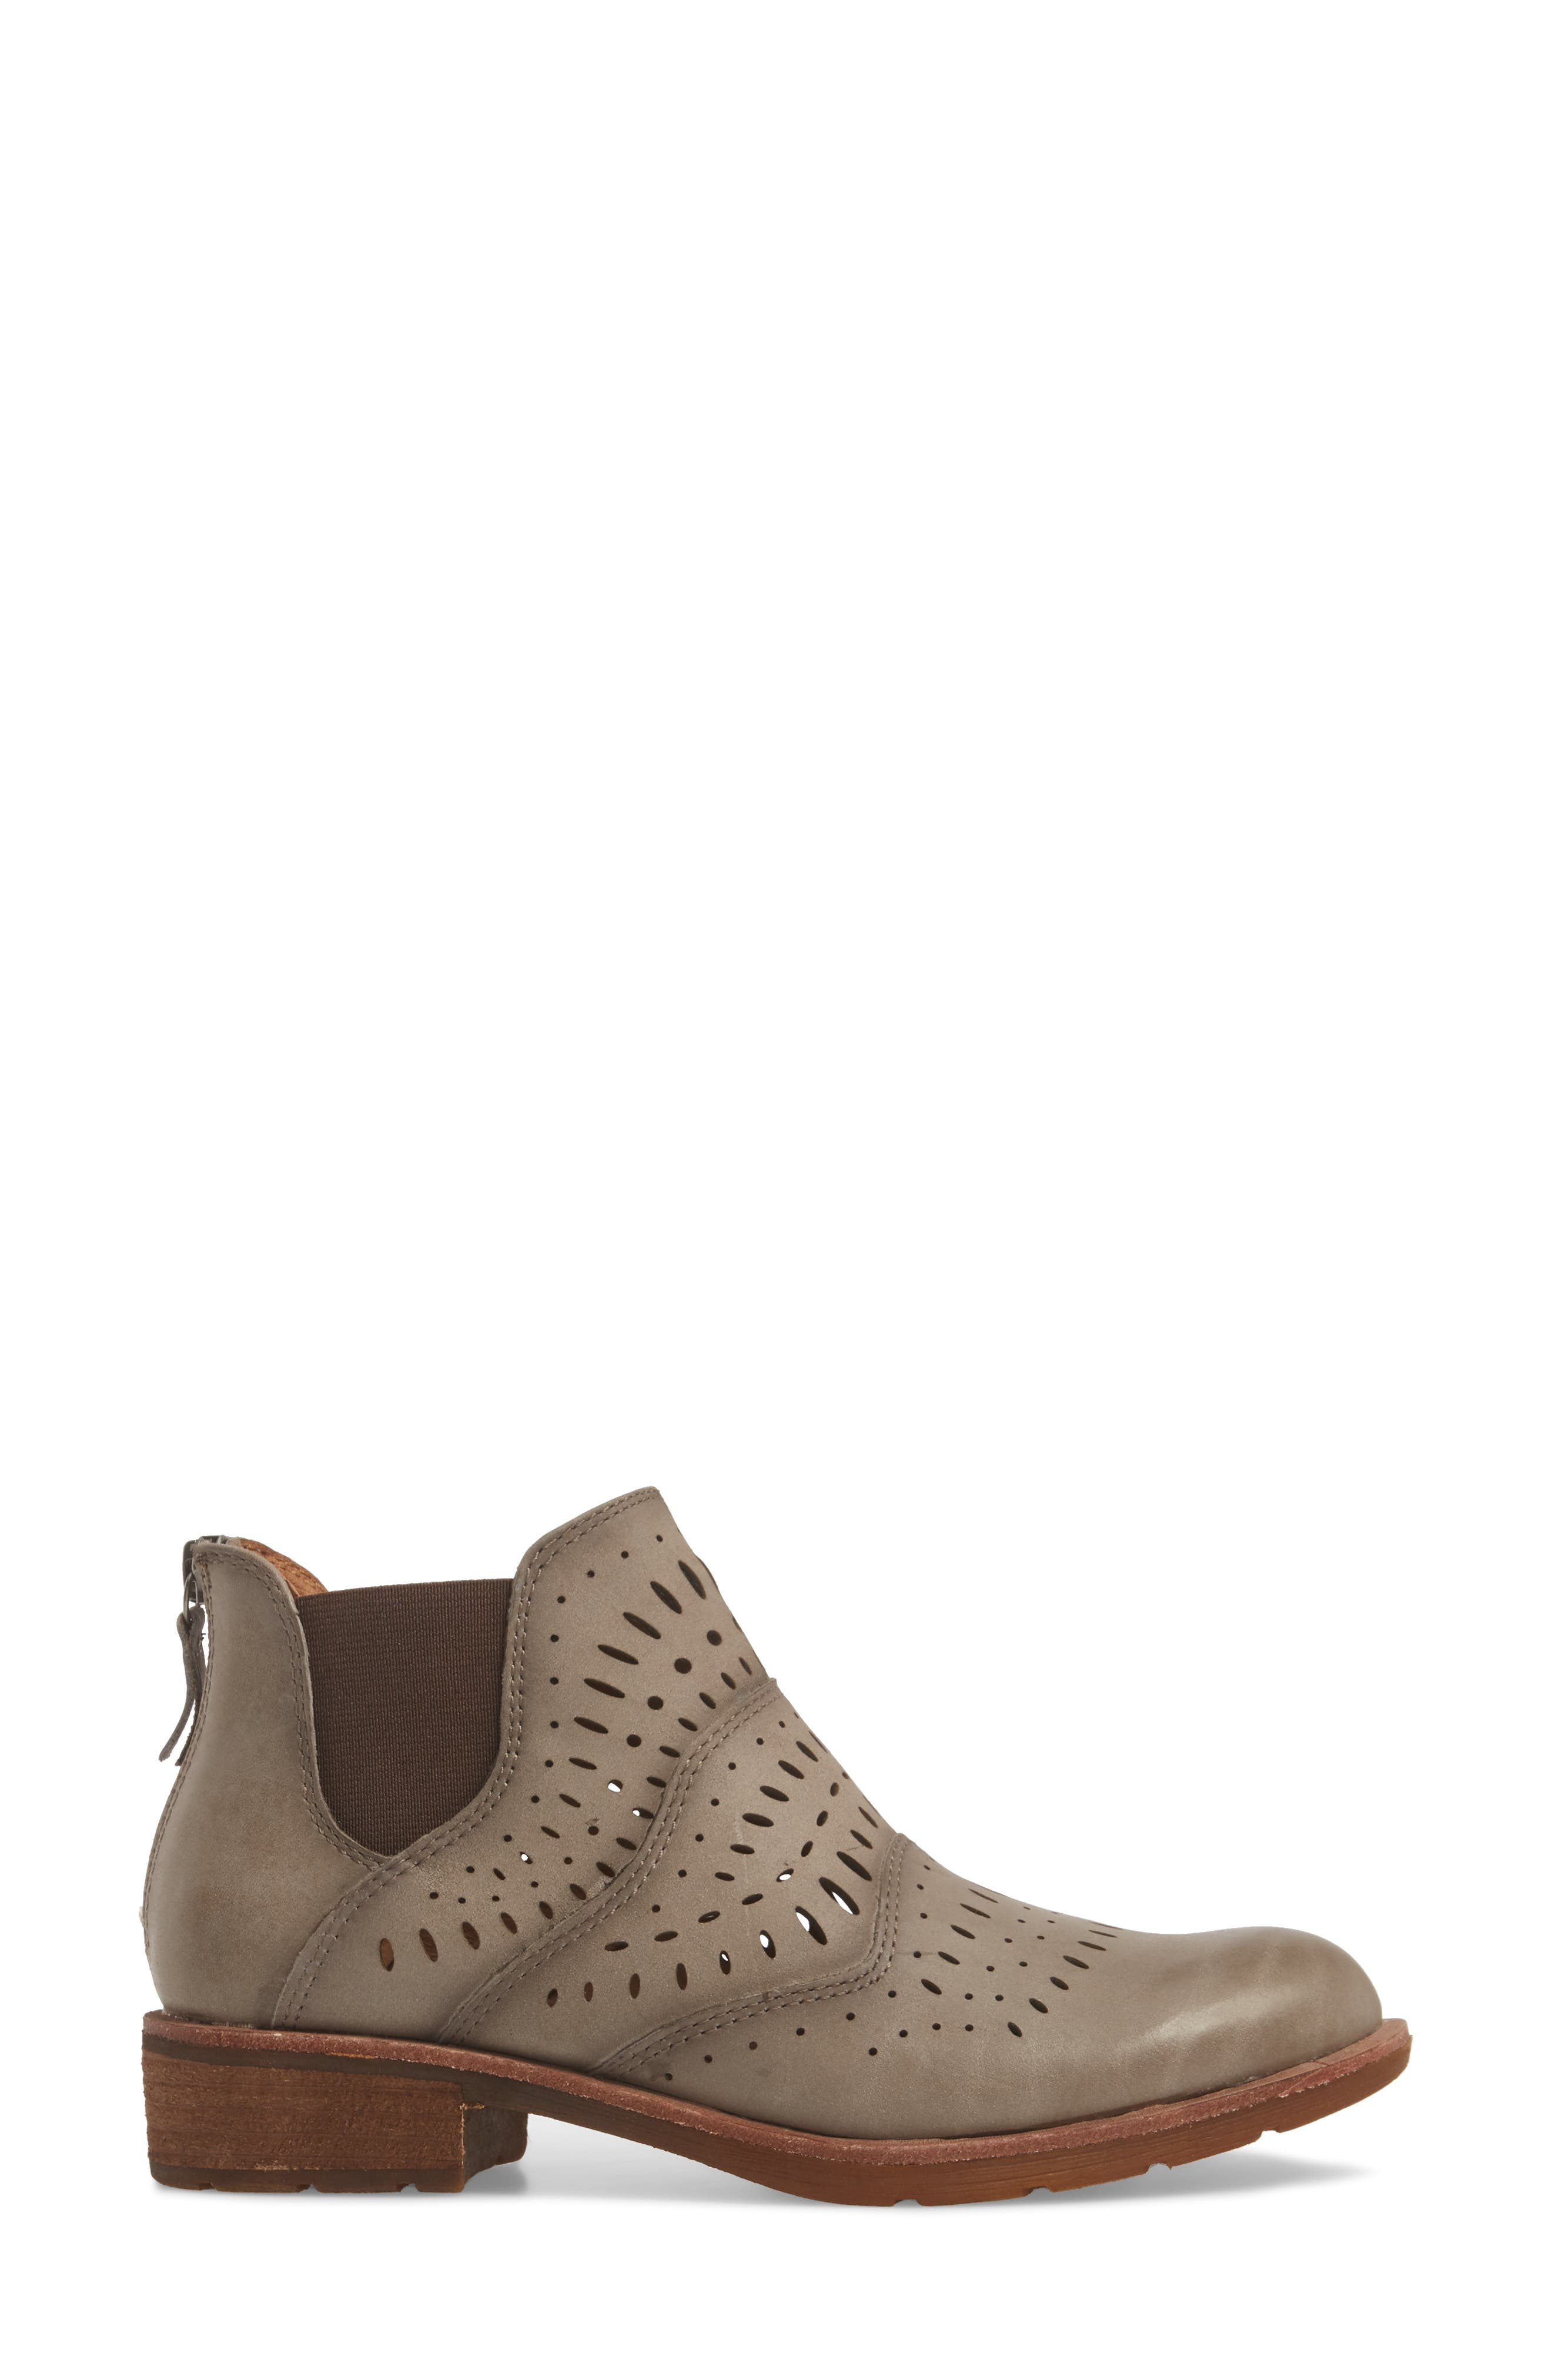 Brenley Bootie,                             Alternate thumbnail 3, color,                             PAPER MACHE GREY LEATHER